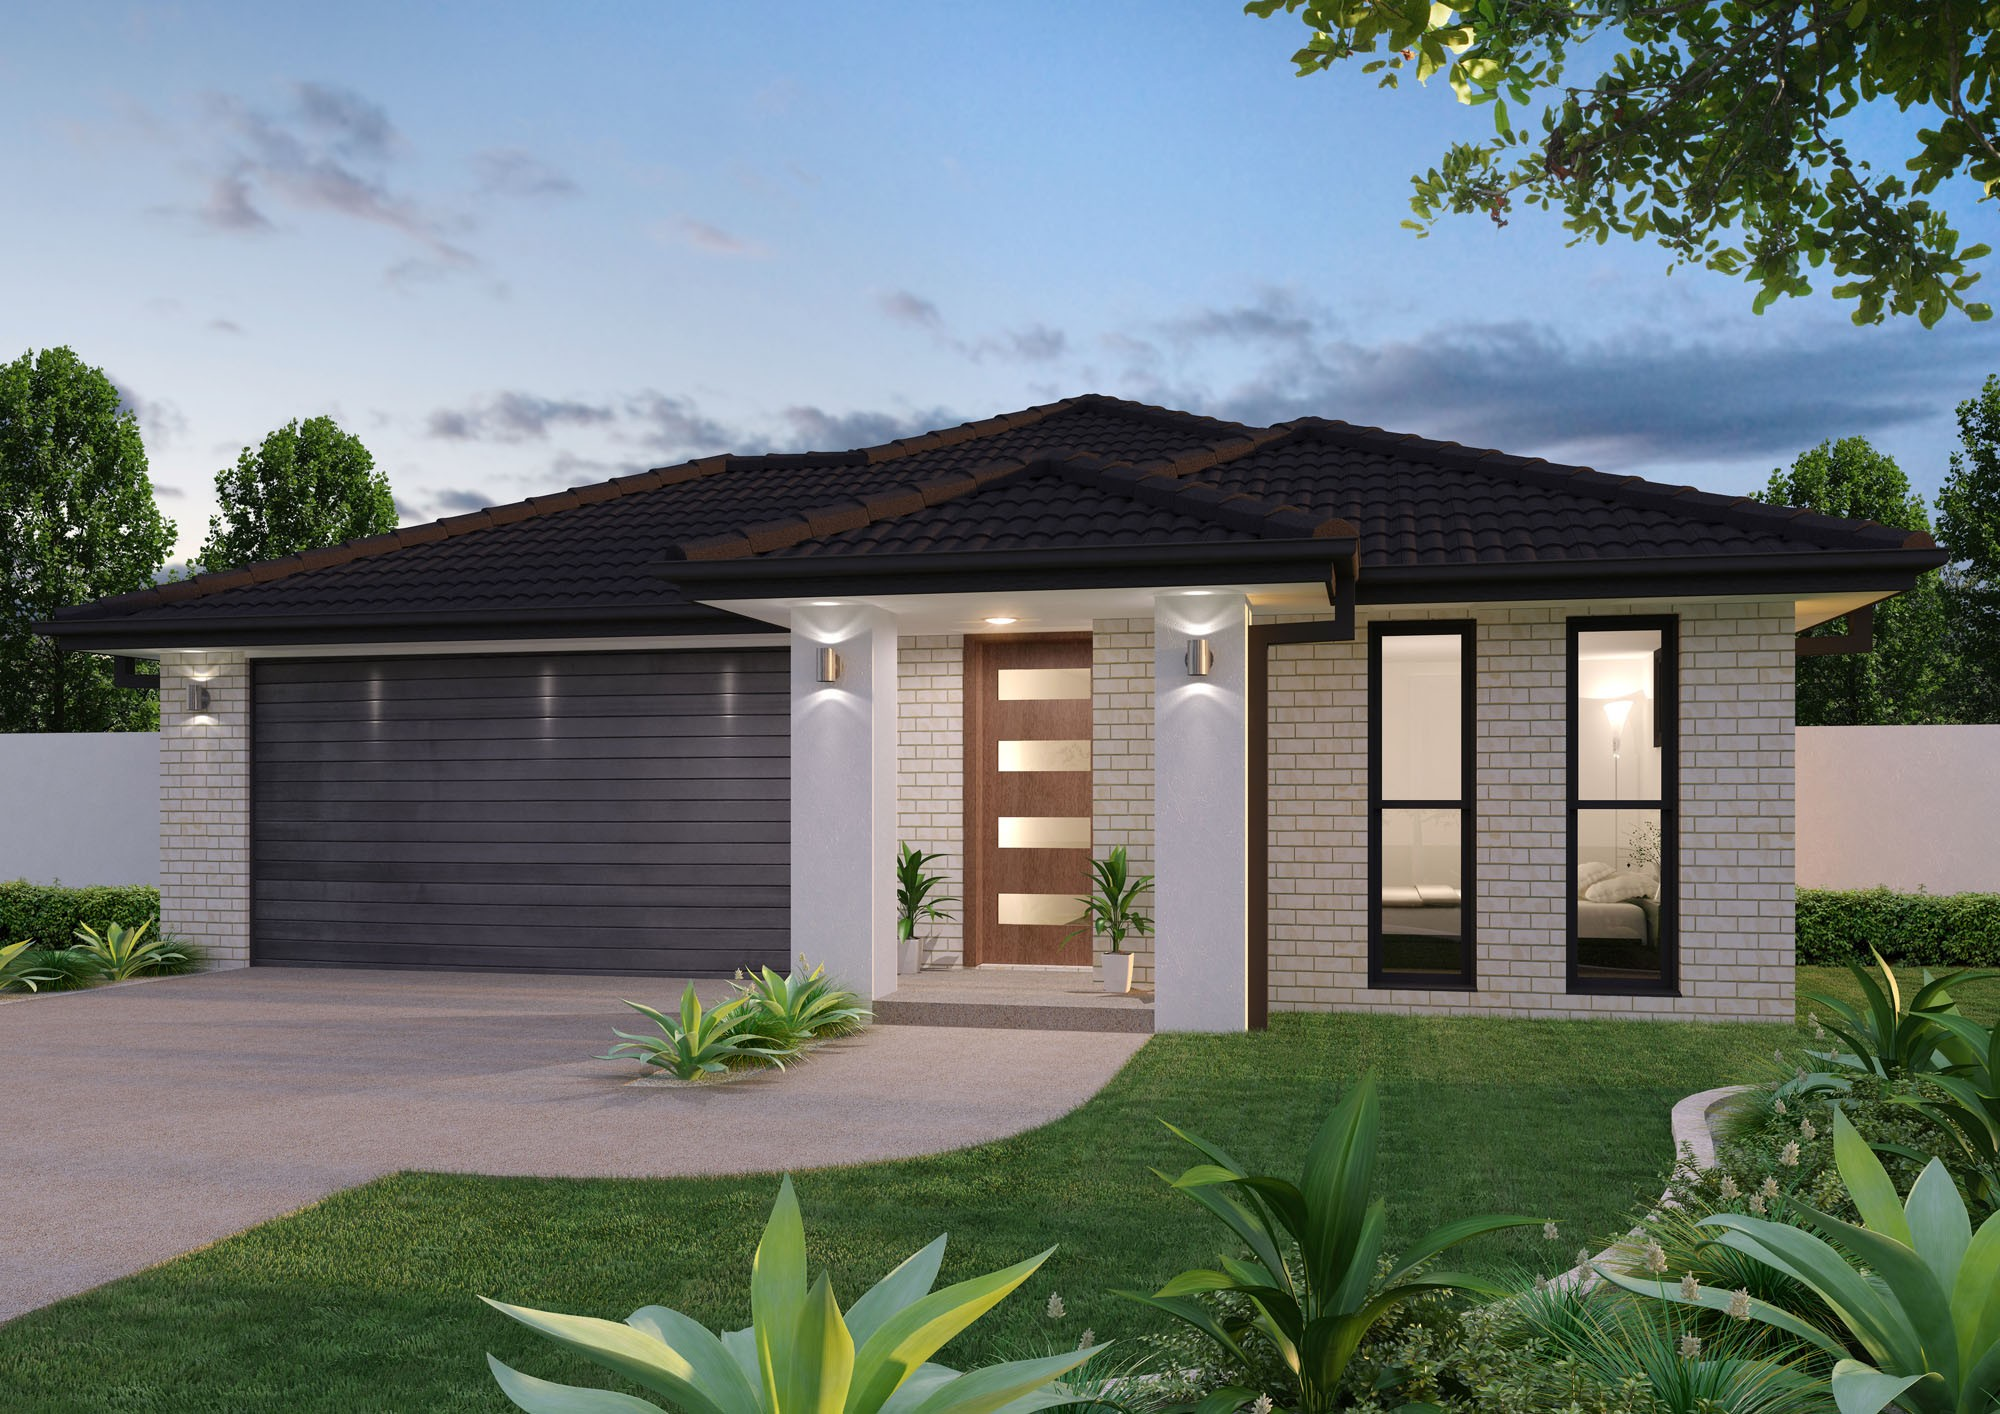 flinders view real estate for sale allhomes